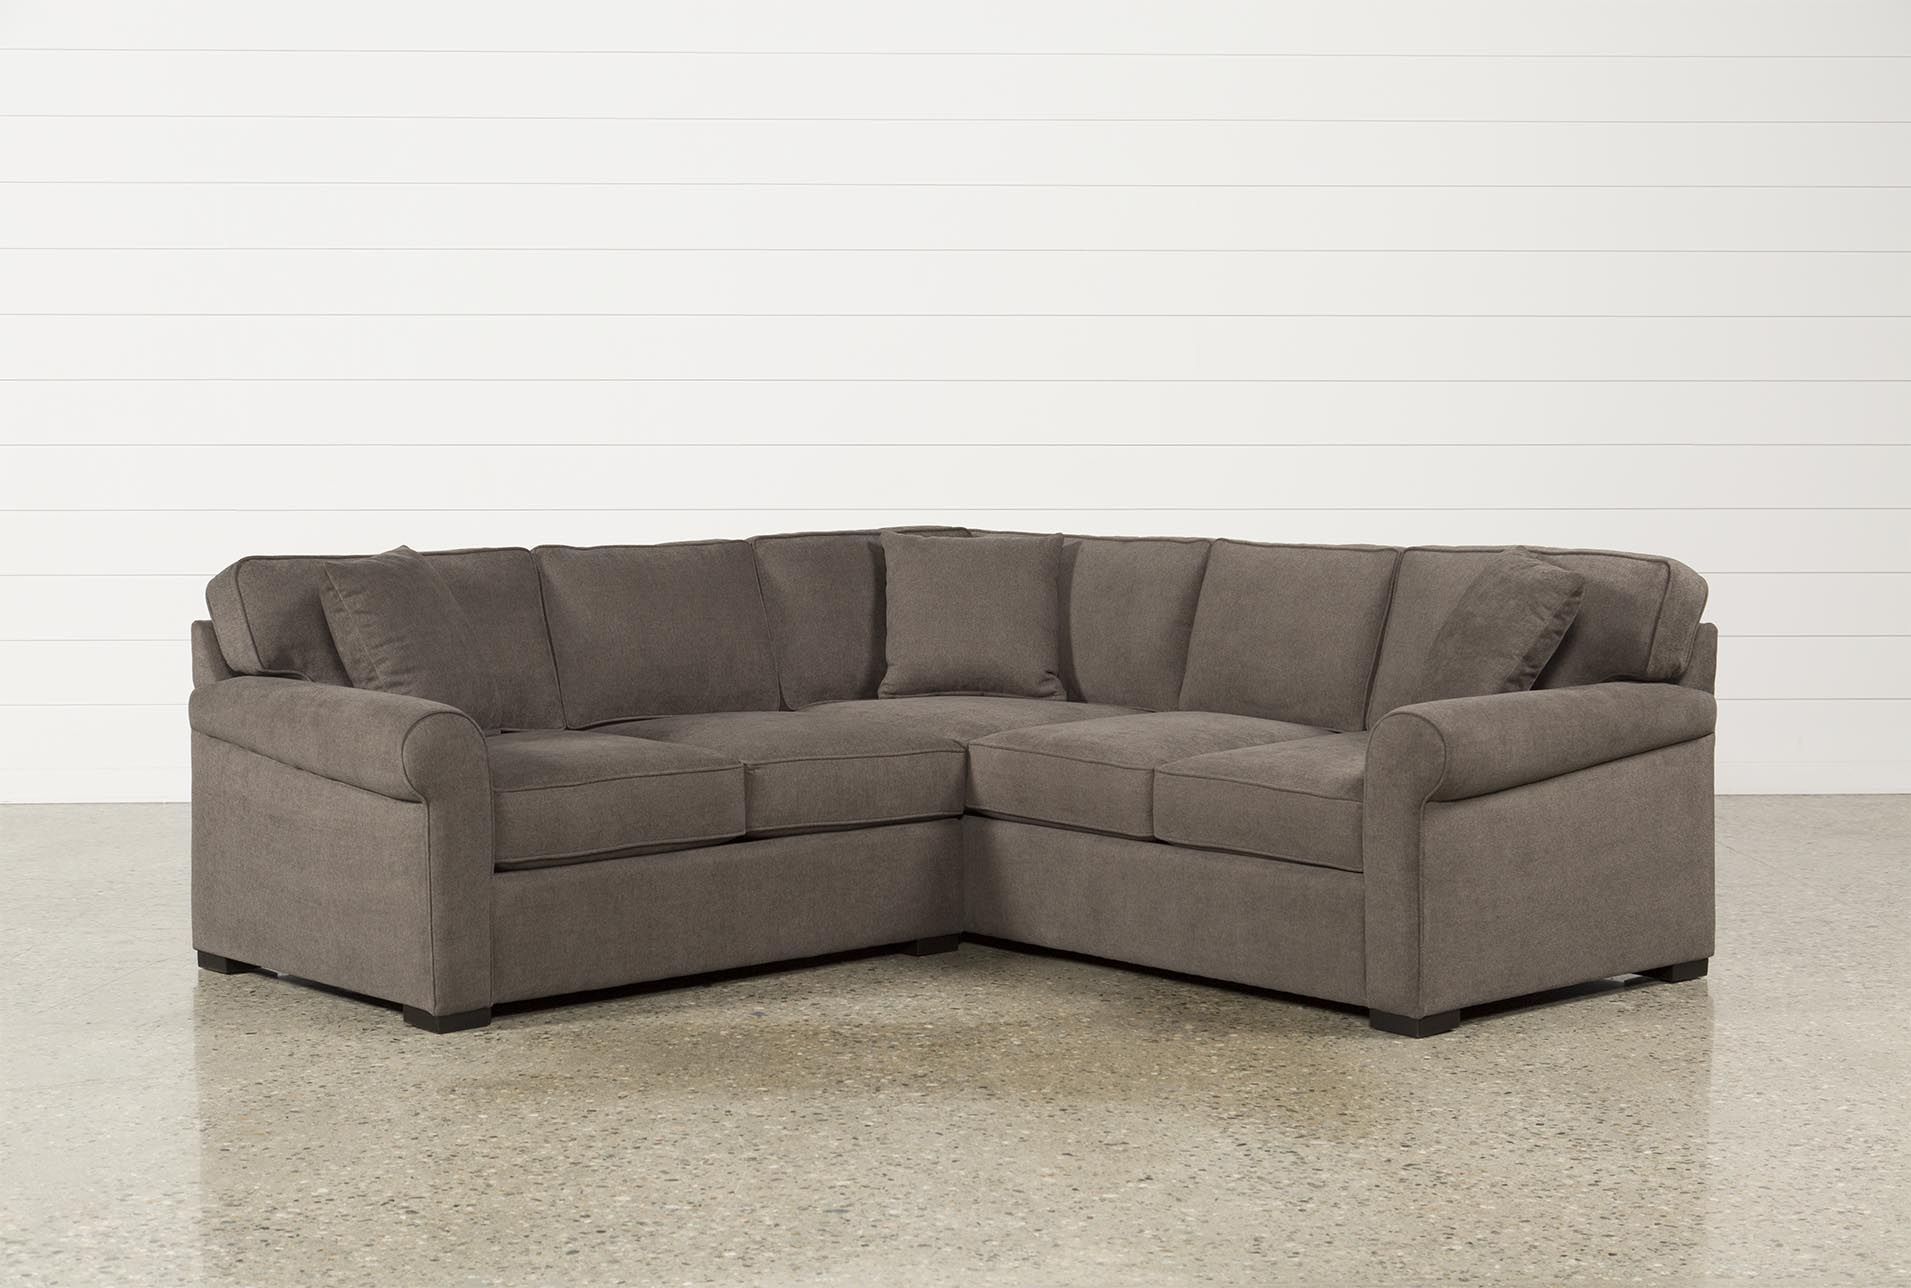 Elm Grande 2 Piece Sectional Inside Turdur 3 Piece Sectionals With Raf Loveseat (View 11 of 25)